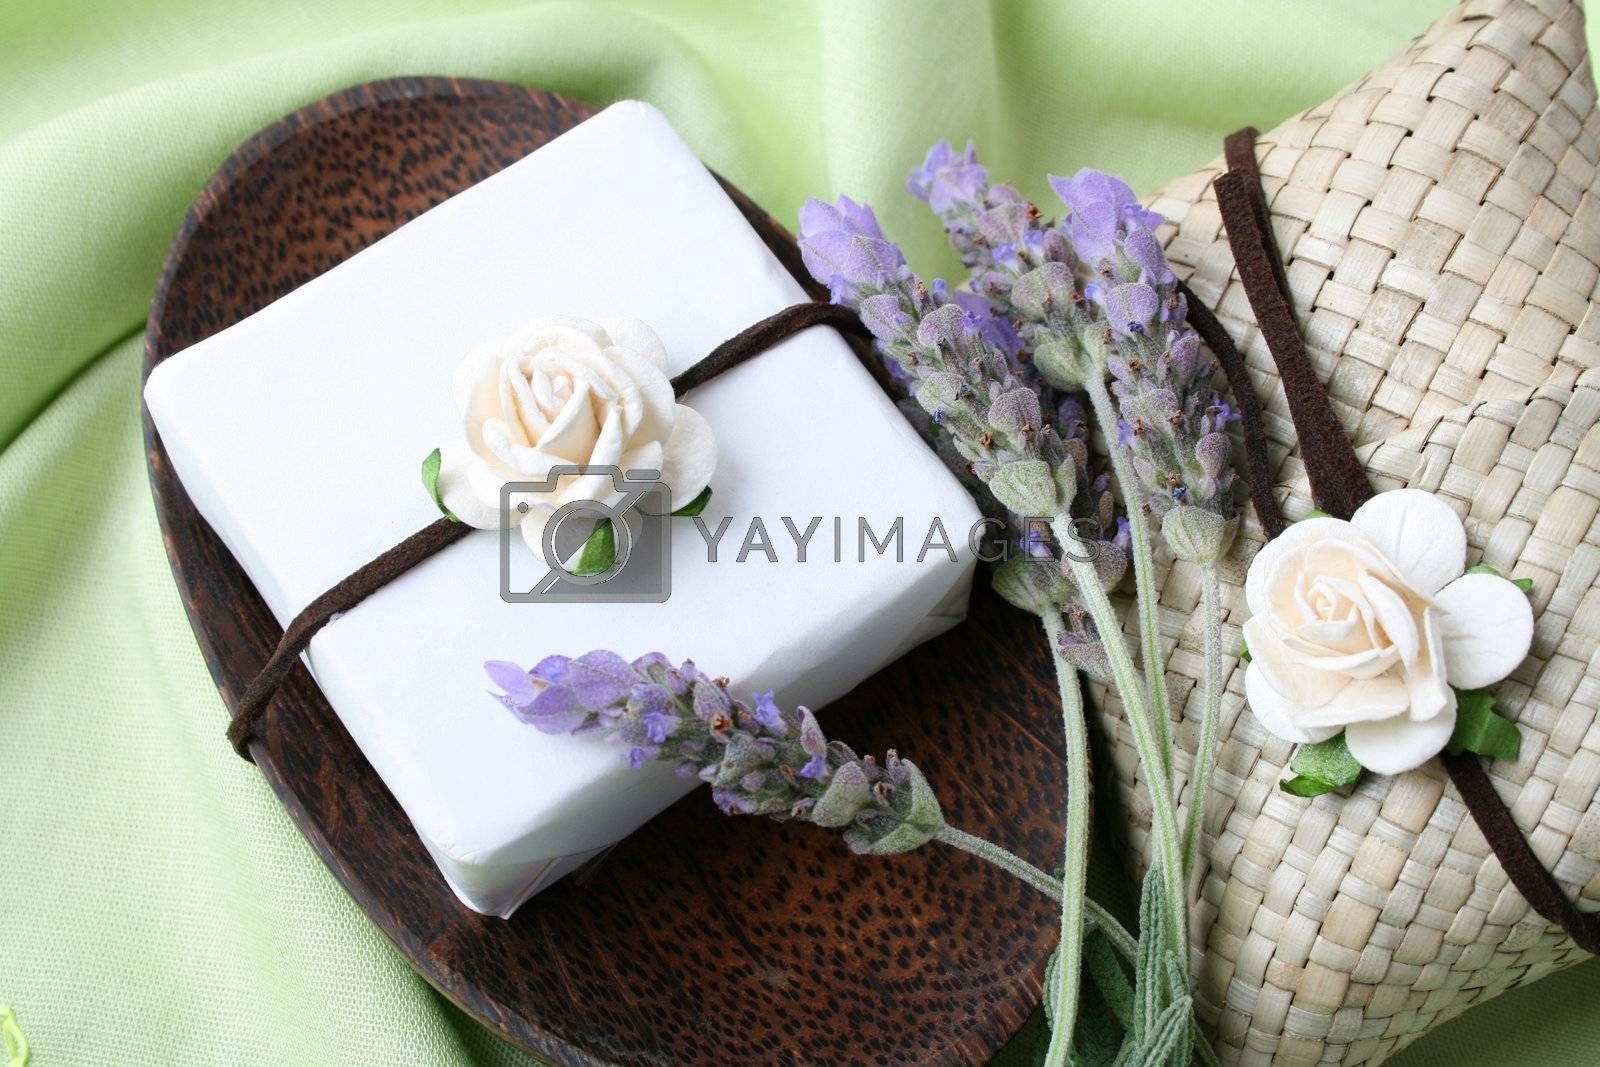 Soap Dish with gift soap and decorated sachet